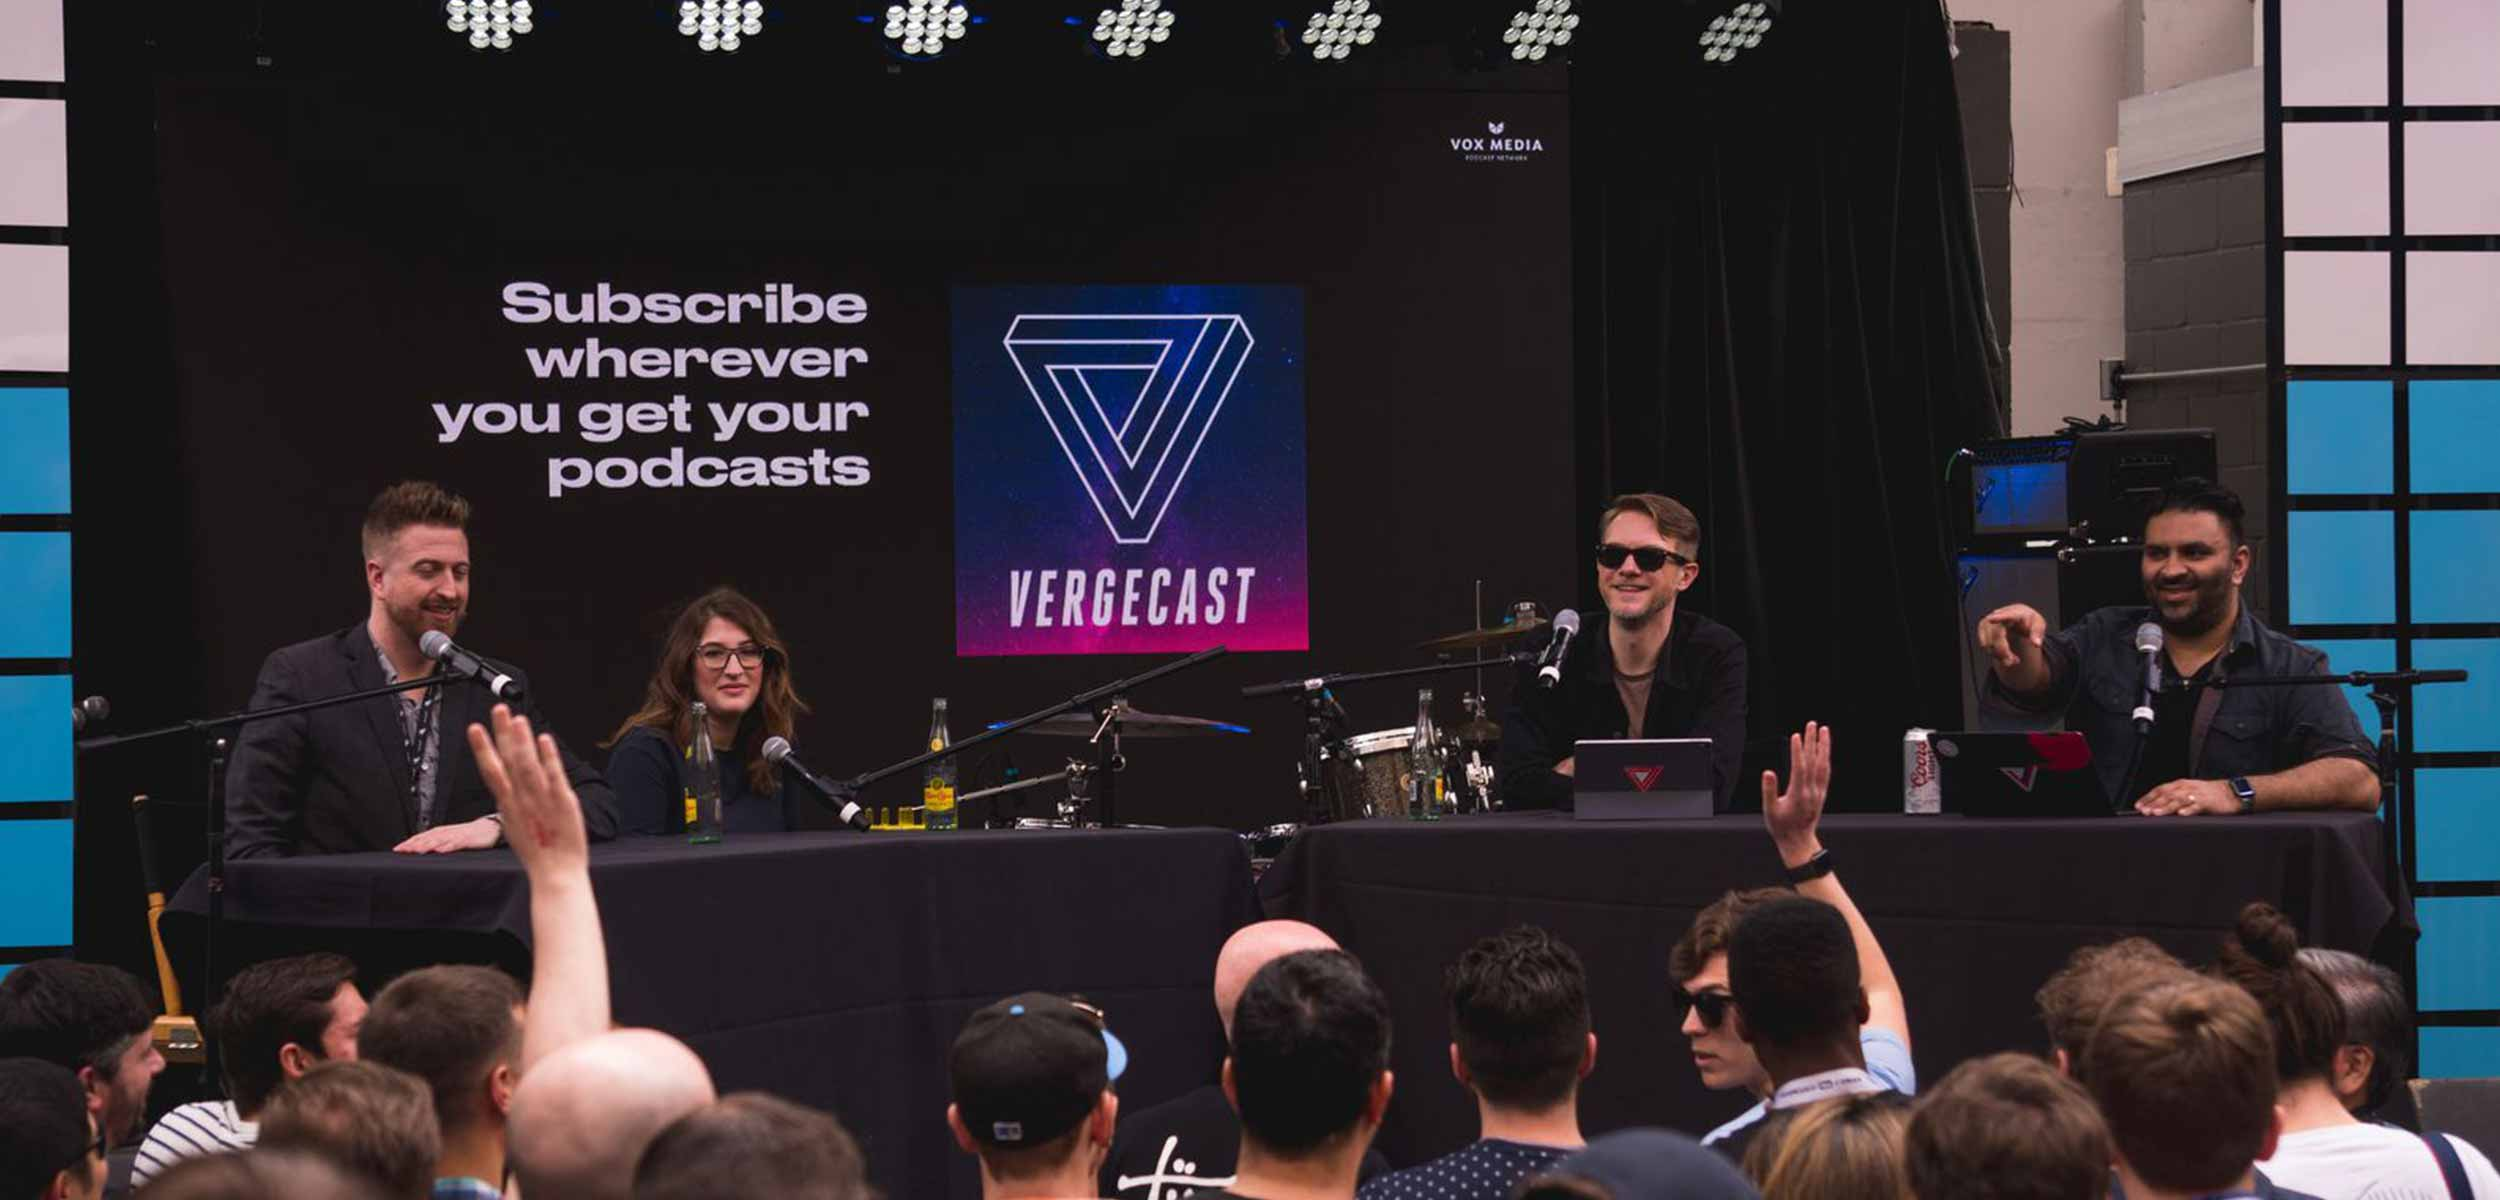 Nilay Patel, Dieter Bohn, Casey Newton, and Ashley Carman hosted their popular podcast, Vergecast, live at SXSW.